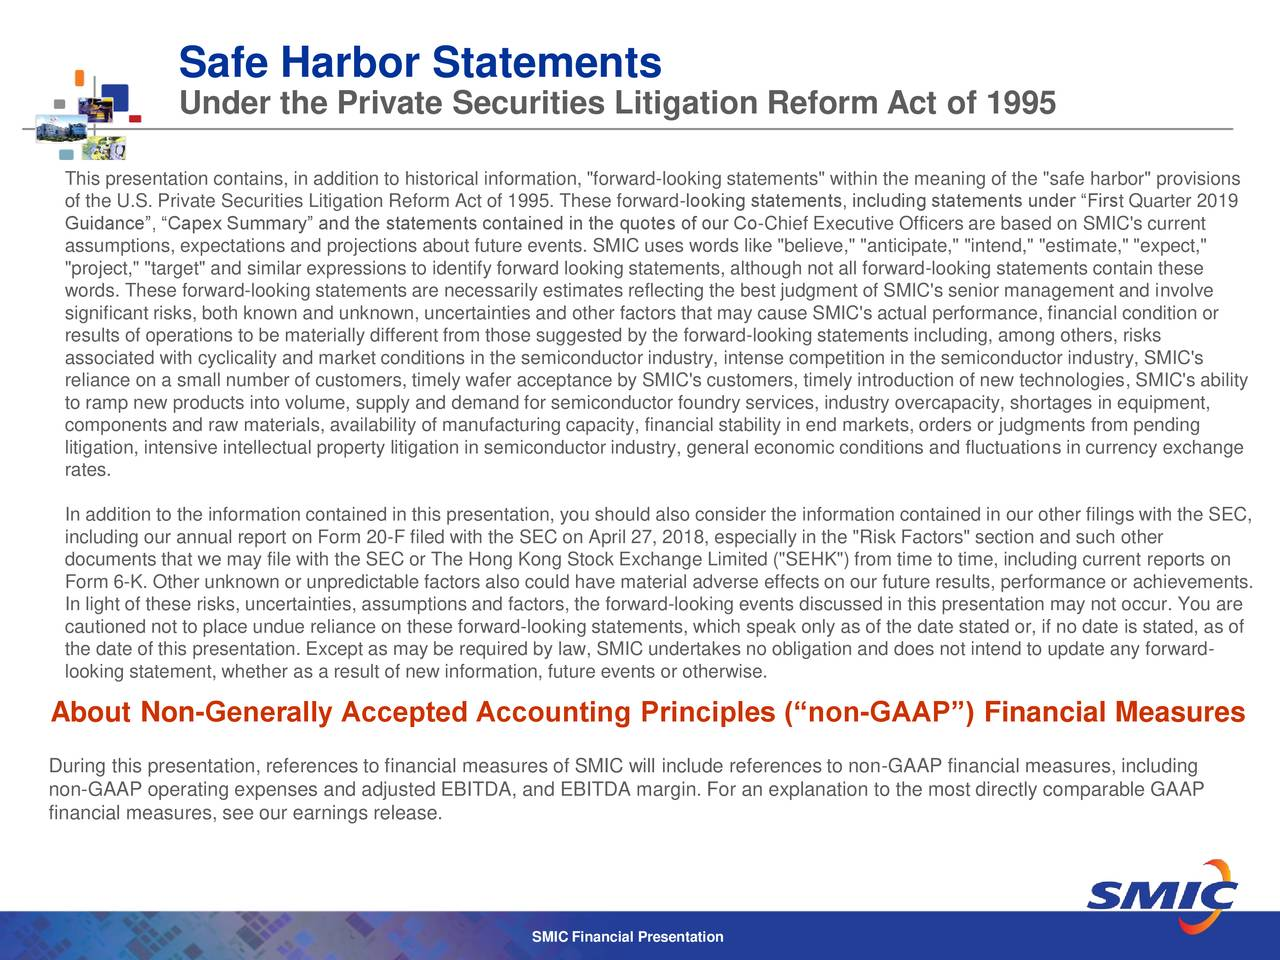 """Under the Private Securities Litigation Reform Act of 1995 This presentation contains, in addition to historical information, """"forward-looking statements"""" within the meaning of the """"safe harbor"""" provisions of the U.S. Private Securities Litigation Reform Act of 1995. These forward-looking statements, including statements under """"First Quarter 2019 Guidance"""", """"Capex Summary"""" and the statements contained in the quotes of our Co-Chief Executive Officers are based on SMIC's current assumptions, expectations and projections about future events. SMIC uses words like """"believe,"""" """"anticipate,"""" """"intend,"""" """"estimate,"""" """"expect,"""" """"project,"""" """"target"""" and similar expressions to identify forward looking statements, although not all forward-looking statements contain these words. These forward-looking statements are necessarily estimates reflecting the best judgment of SMIC's senior management and involve significant risks, both known and unknown, uncertainties and other factors that may cause SMIC's actual performance, financial condition or results of operations to be materially different from those suggested by the forward-looking statements including, among others, risks associated with cyclicality and market conditions in the semiconductor industry, intense competition in the semiconductor industry, SMIC's reliance on a small number of customers, timely wafer acceptance by SMIC's customers, timely introduction of new technologies, SMIC's ability to ramp new products into volume, supply and demand for semiconductor foundry services, industry overcapacity, shortages in equipment, components and raw materials, availability of manufacturing capacity, financial stability in end markets, orders or judgments from pending litigation, intensive intellectual property litigation in semiconductor industry, general economic conditions and fluctuations in currency exchange rates. In addition to the information contained in this presentation, you should also consider the information contained i"""